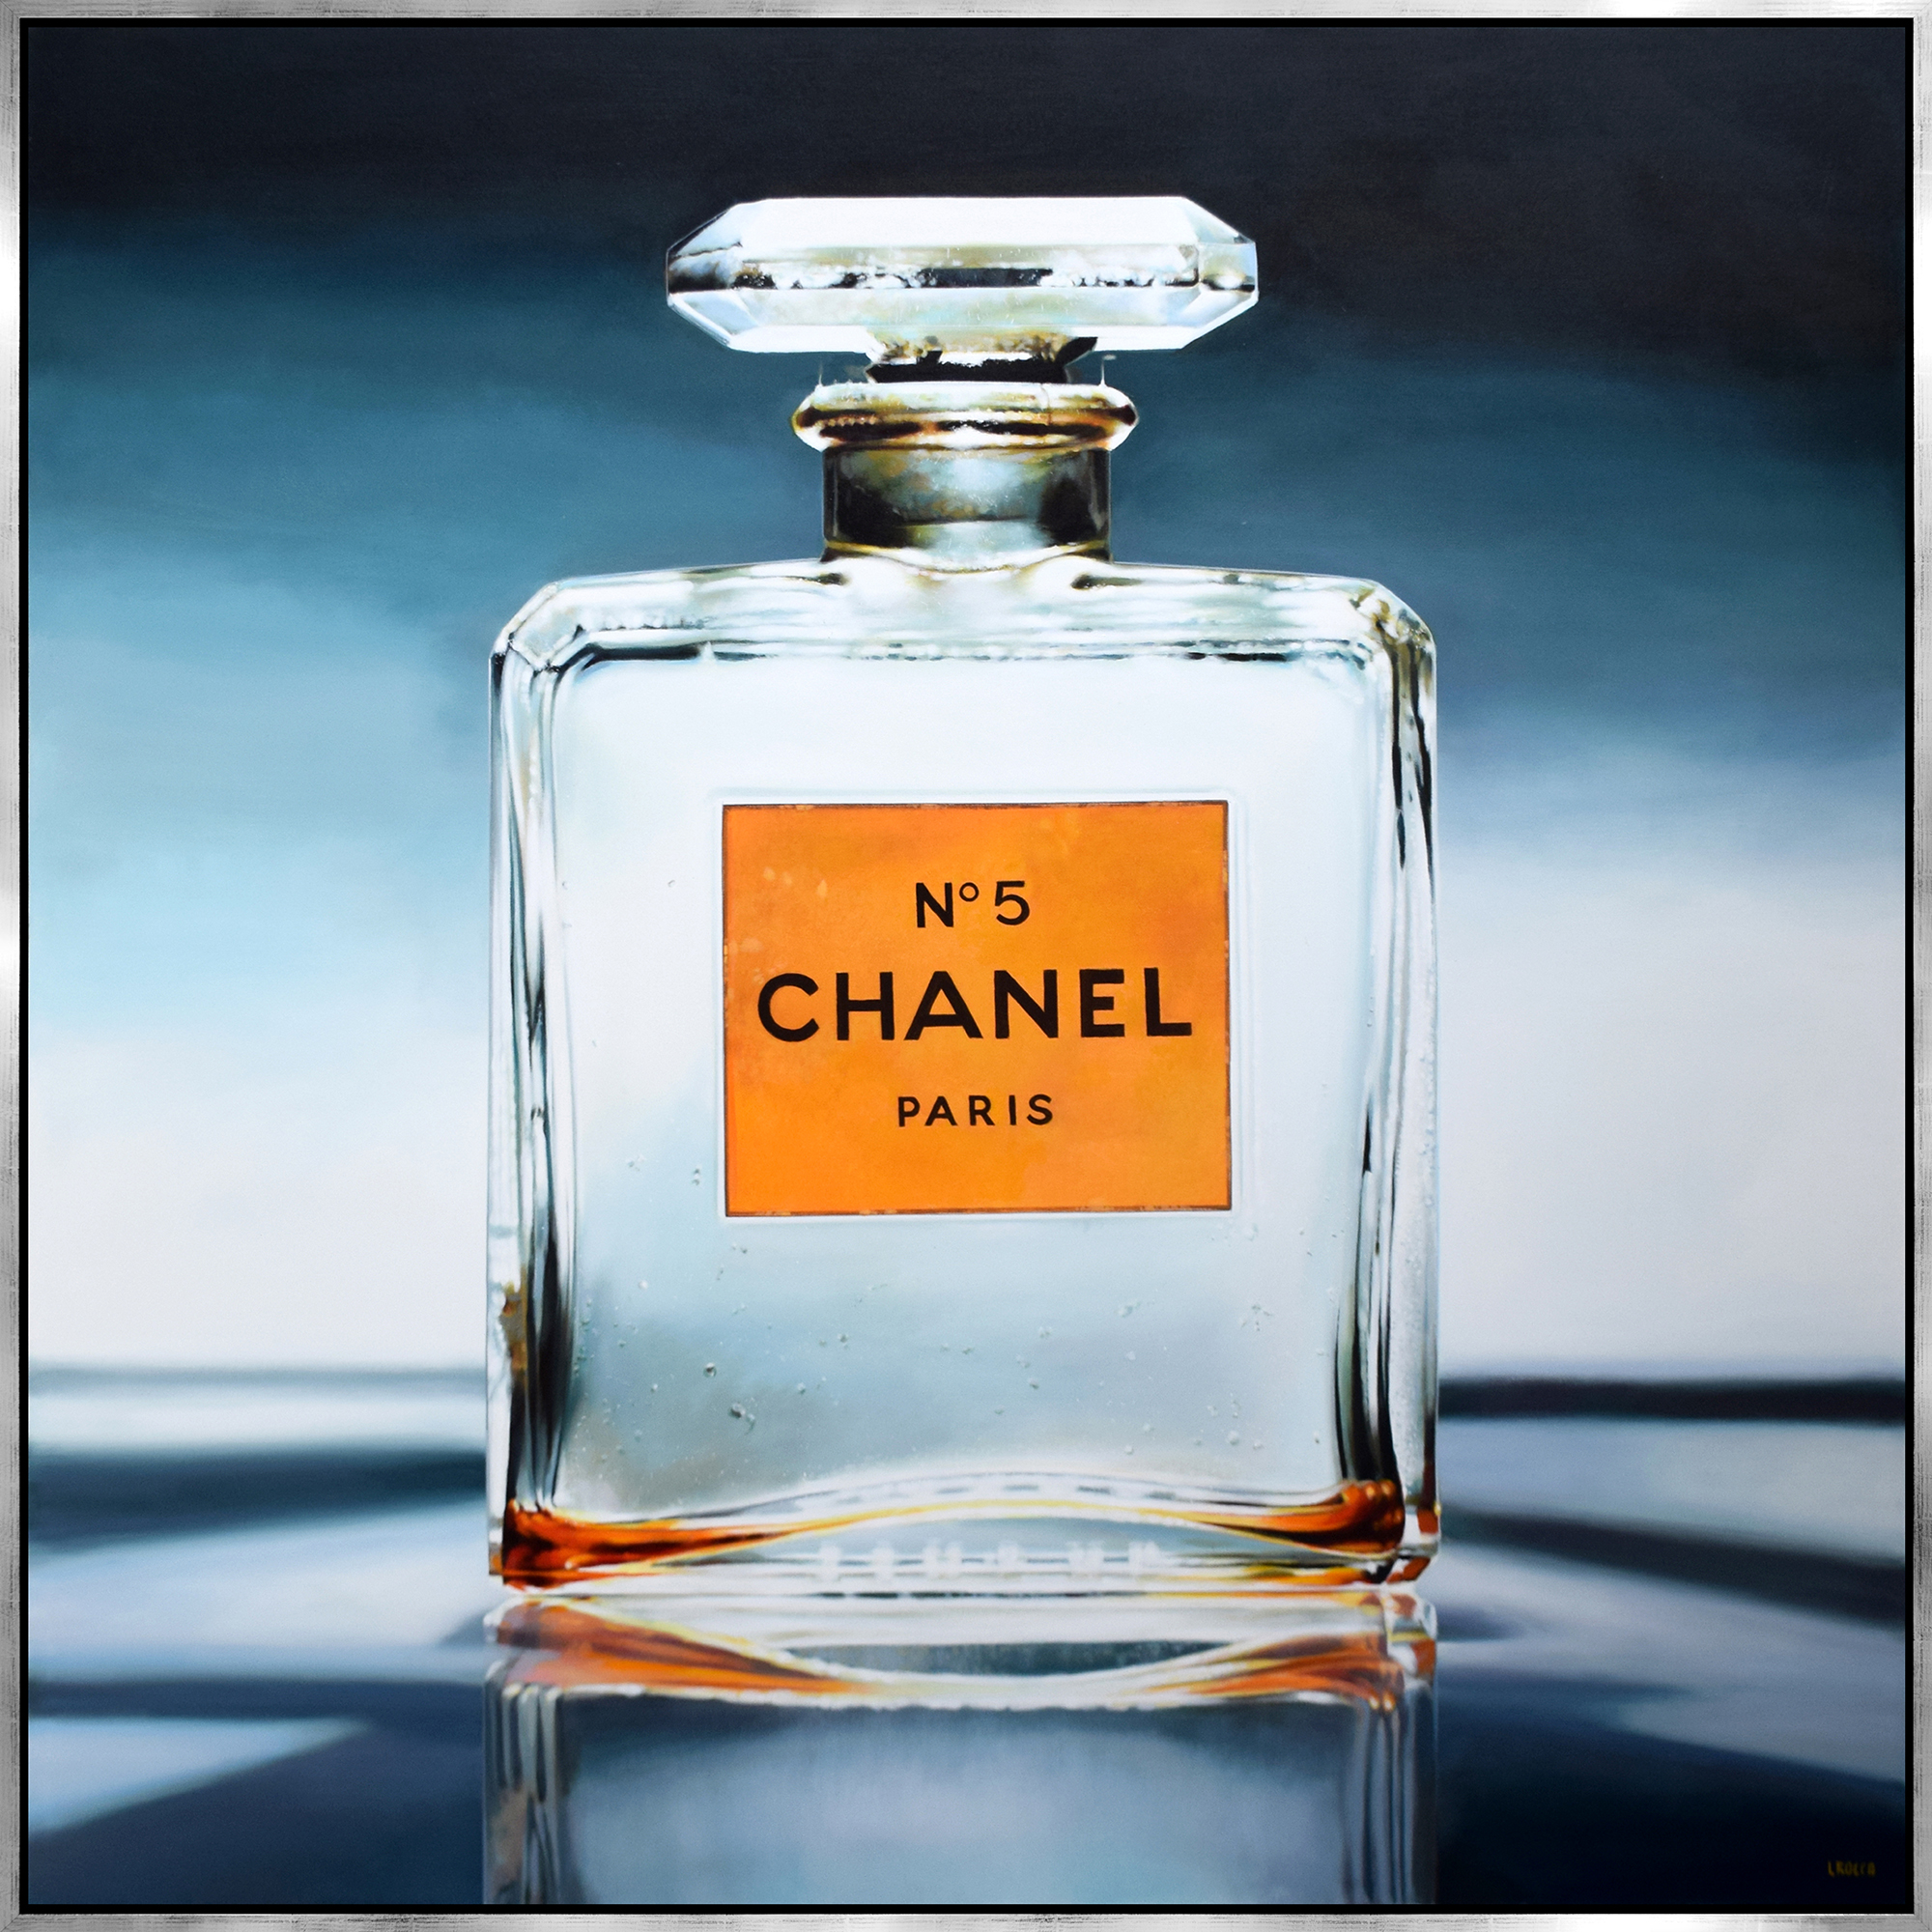 Luigi Rocca - 2 Drops of Chanel , 6855-006-316